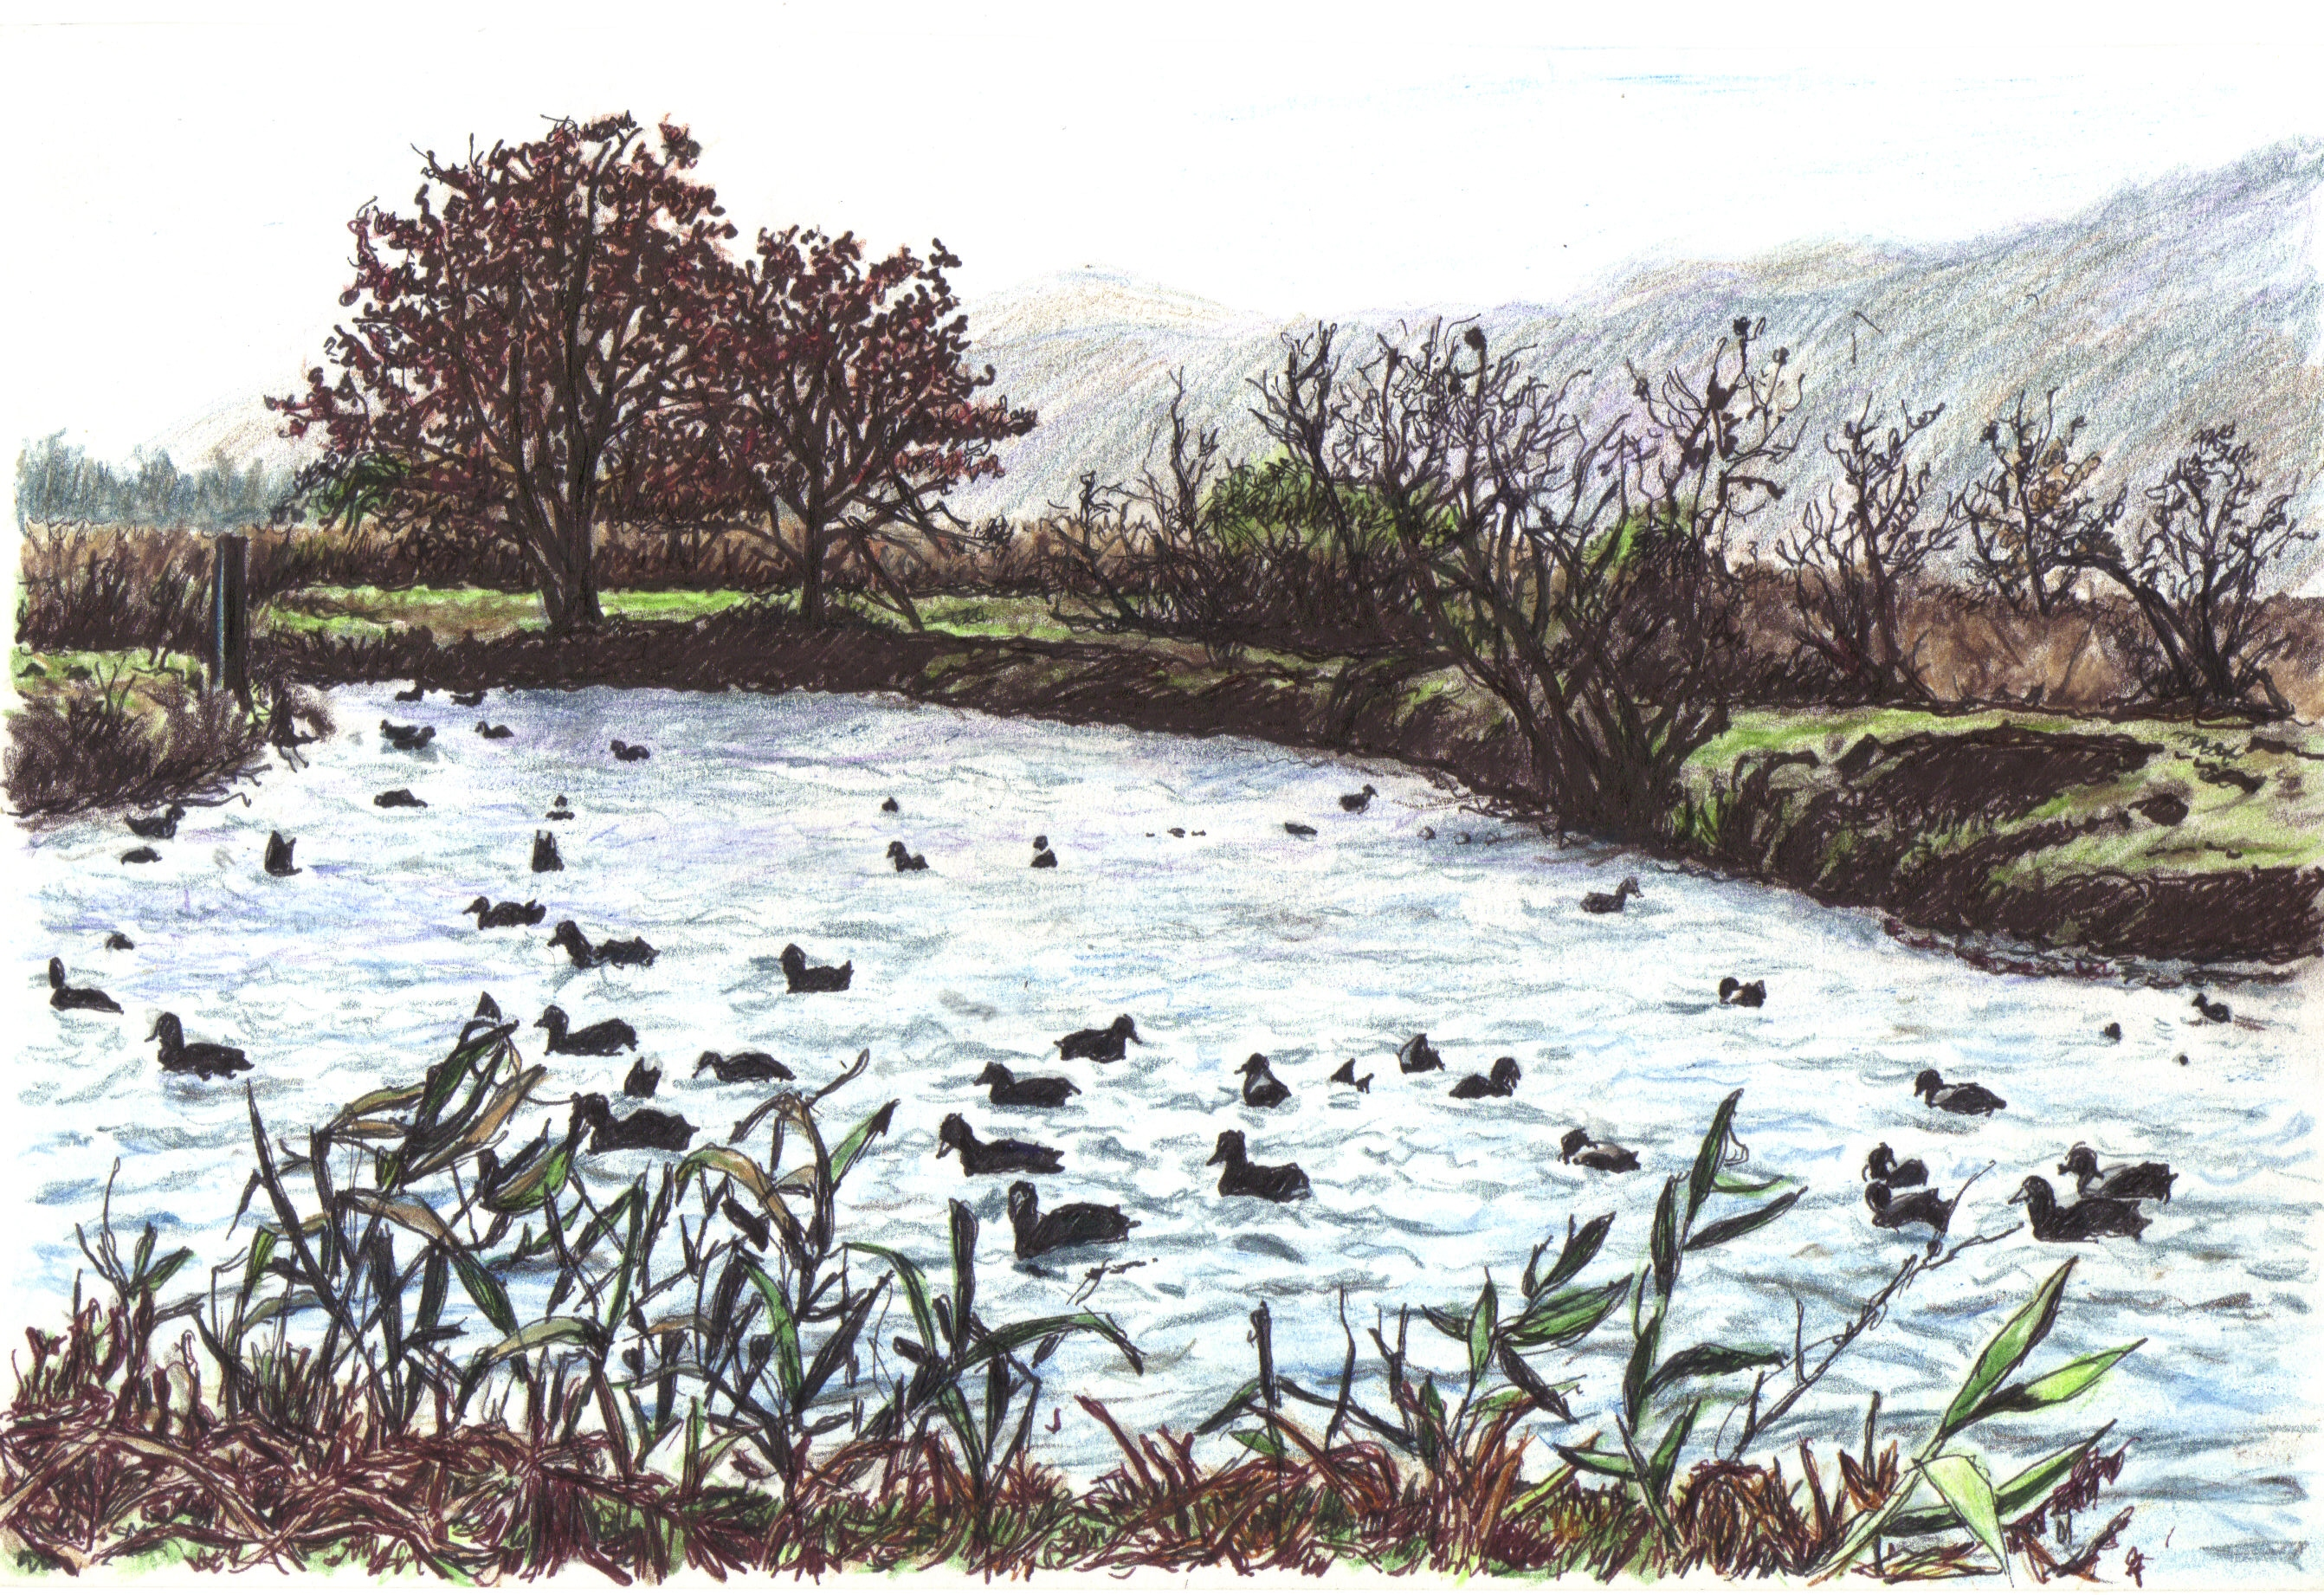 Coots in Agmon Hahula